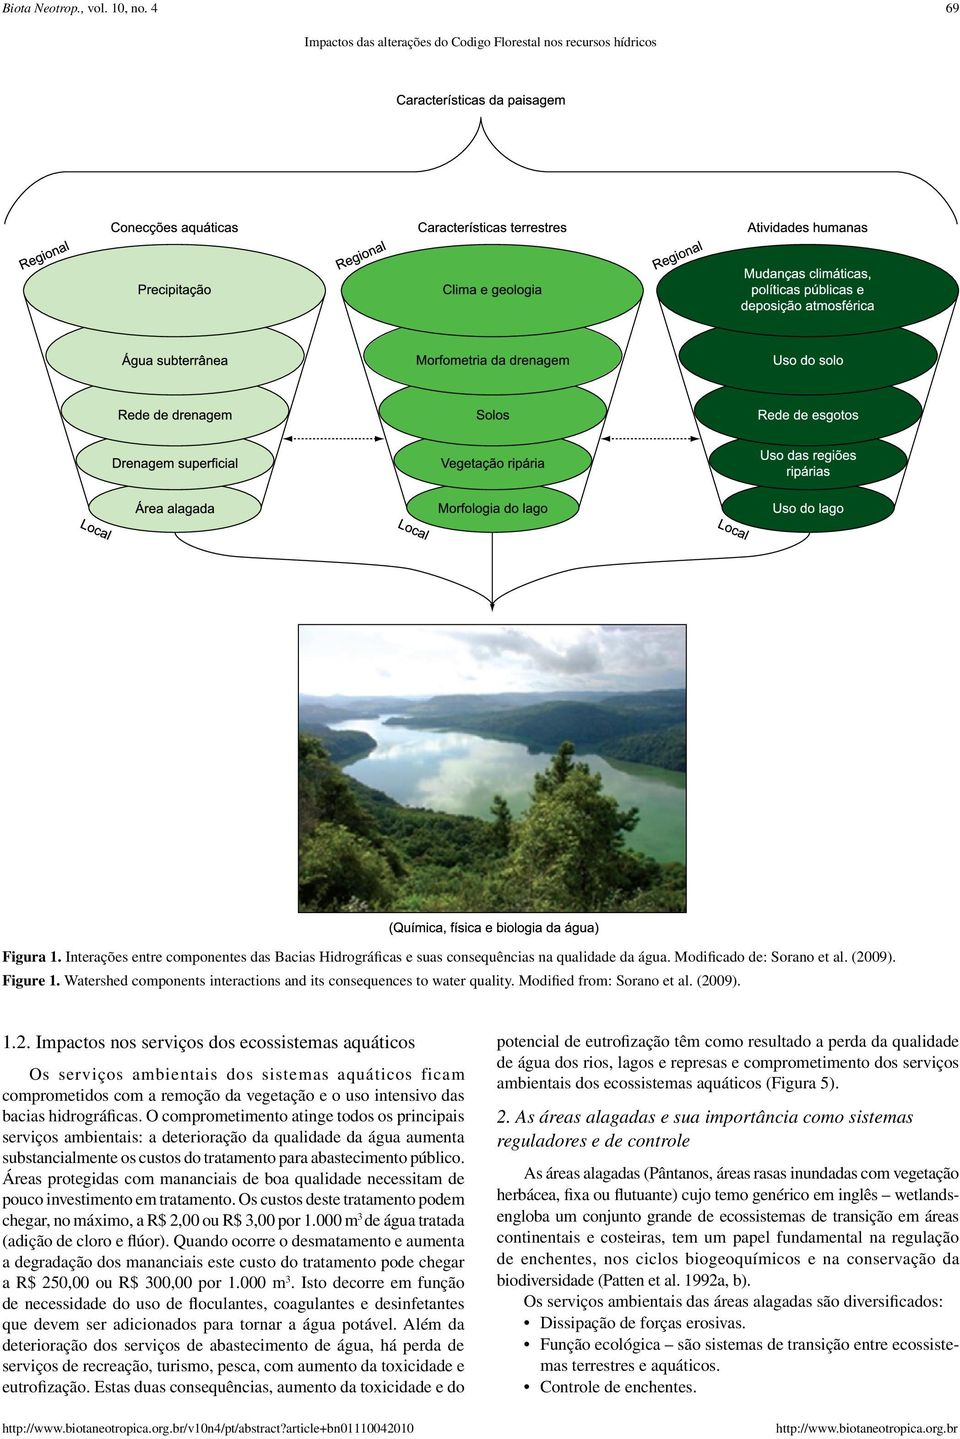 Watershed components interactions and its consequences to water quality. Modified from: Sorano et al. (20